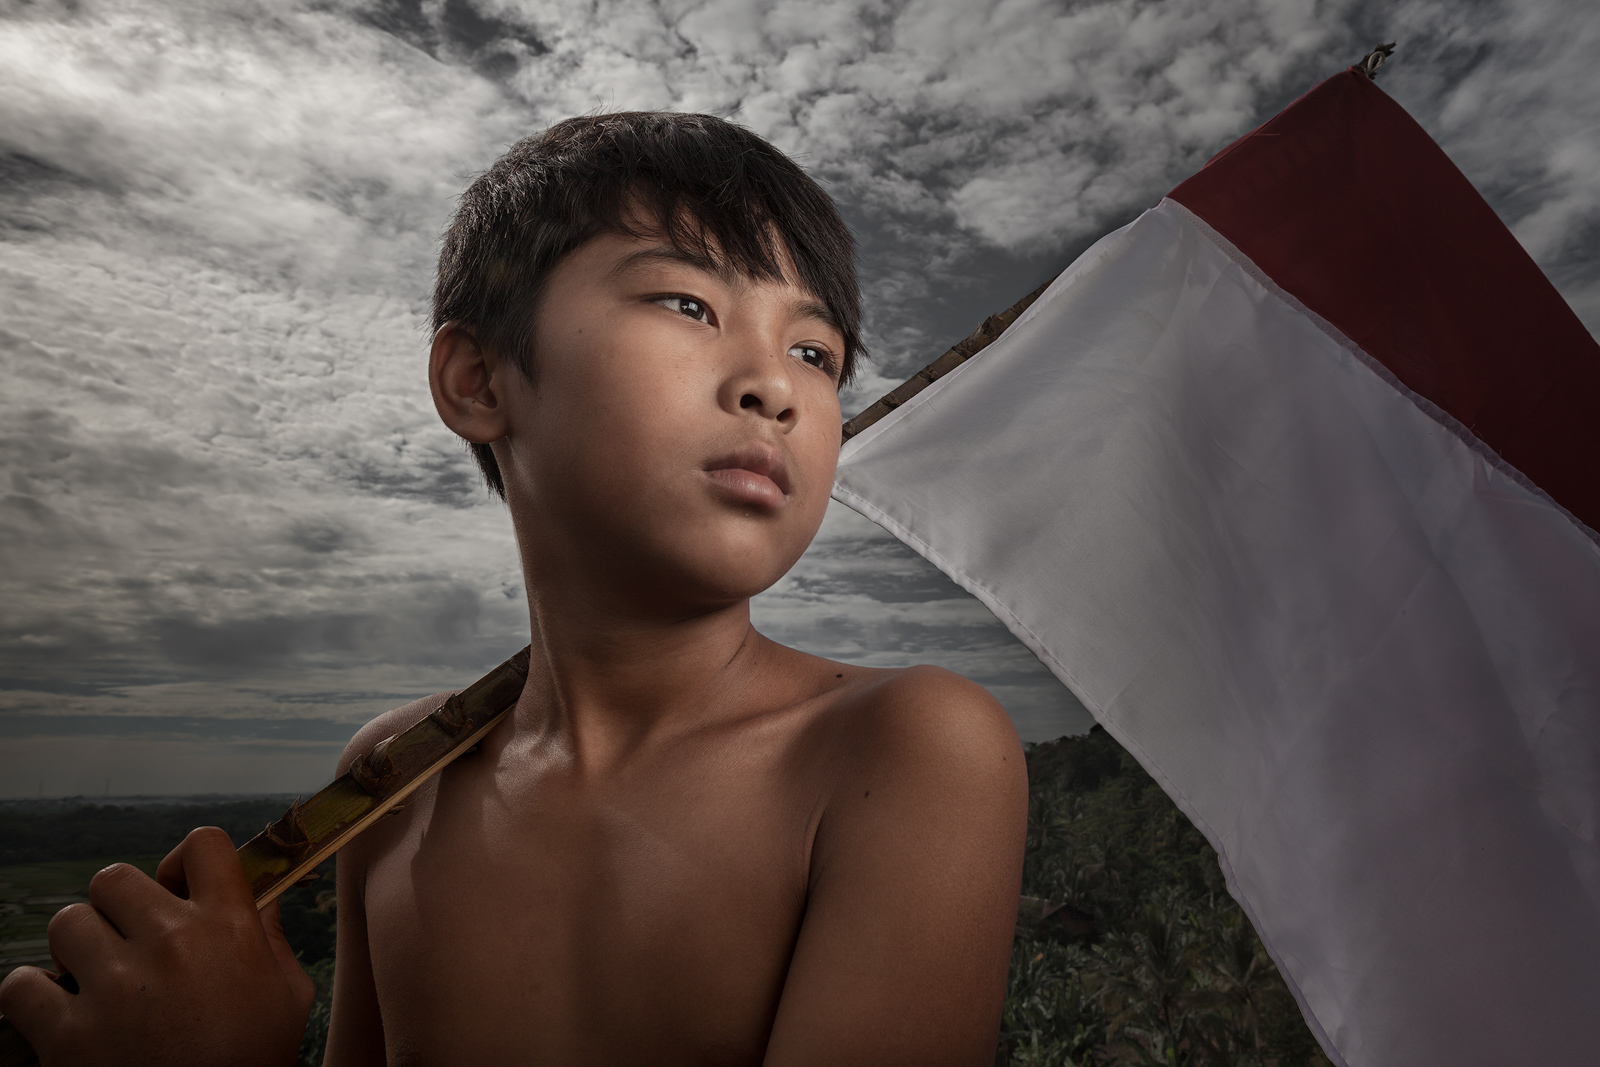 asia,asian,boy,environmental portait,flag,indonesia,indonesian,jakarta,java,male,portrait,rumpin,west java,young, photo